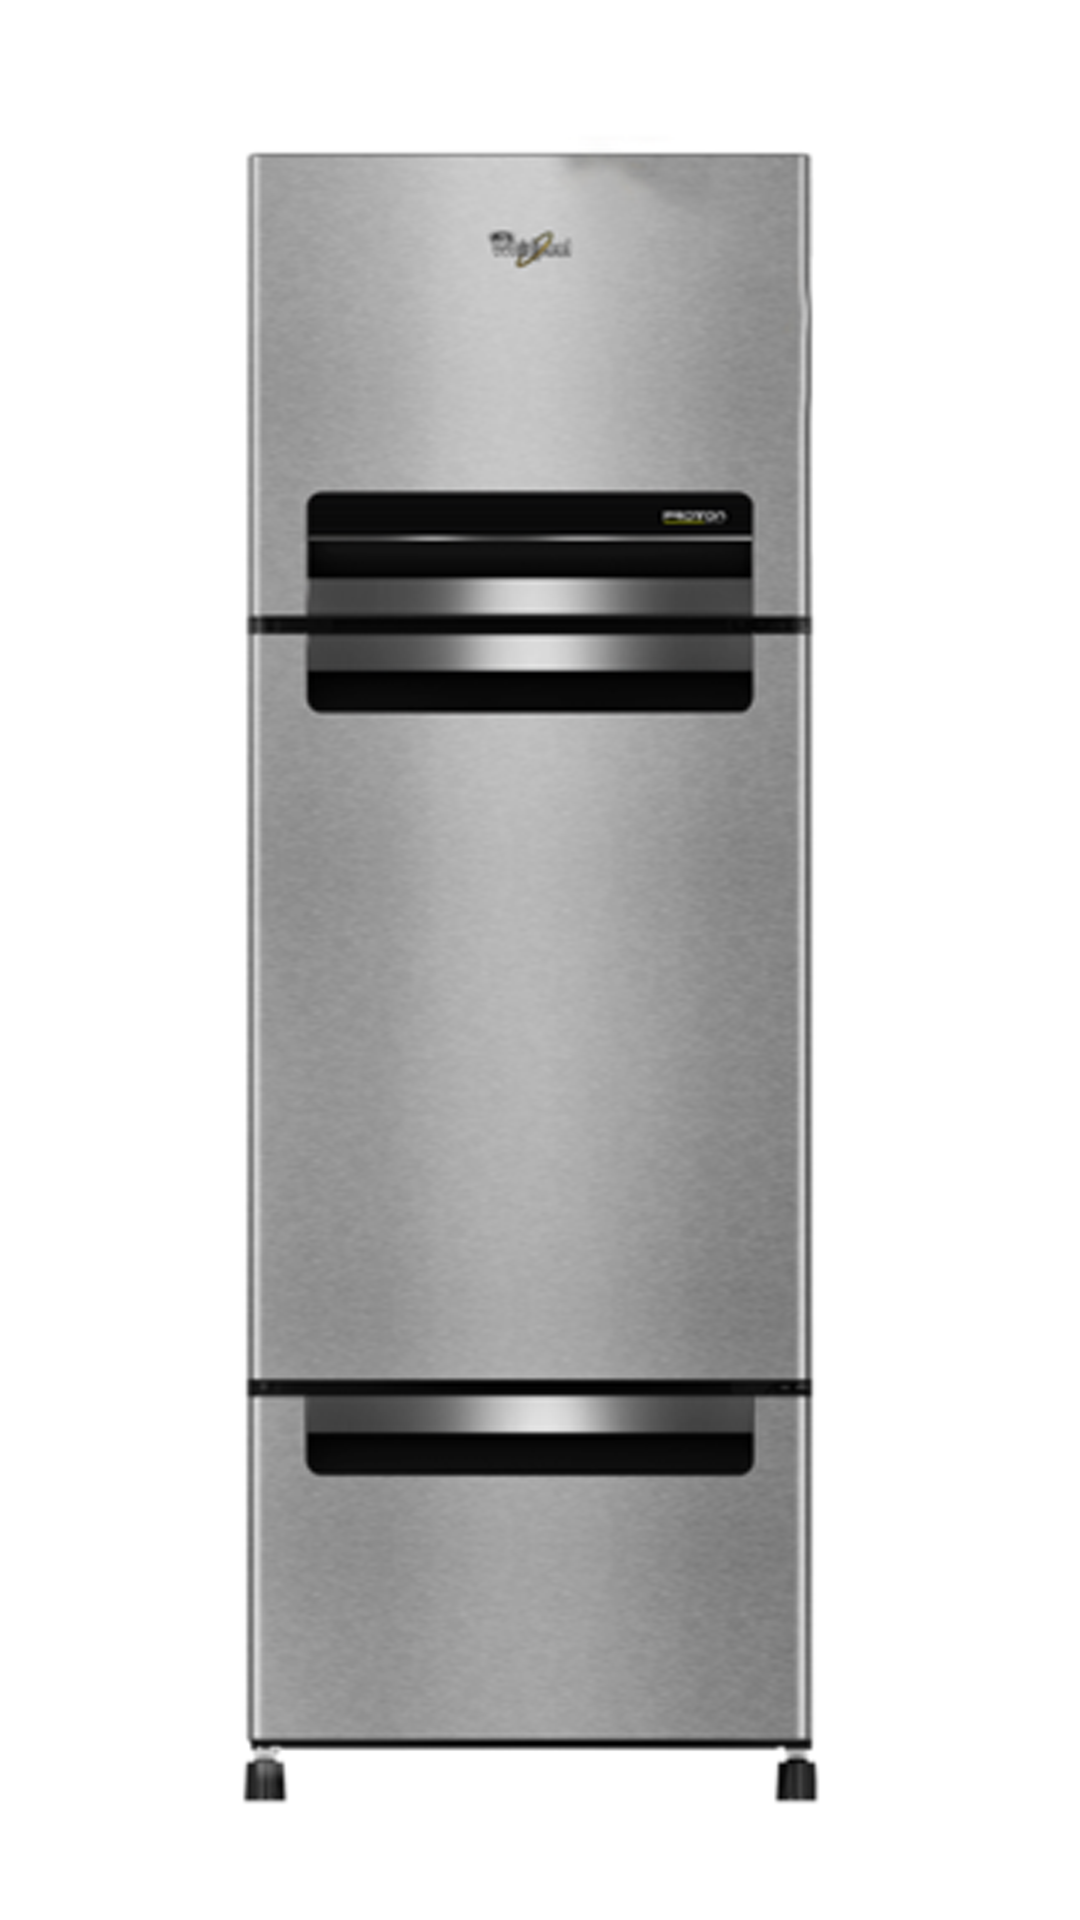 Whirlpool 240 L Triple Door Refrigerator (Alpha Steel) - FP 263D PROTTON ROY